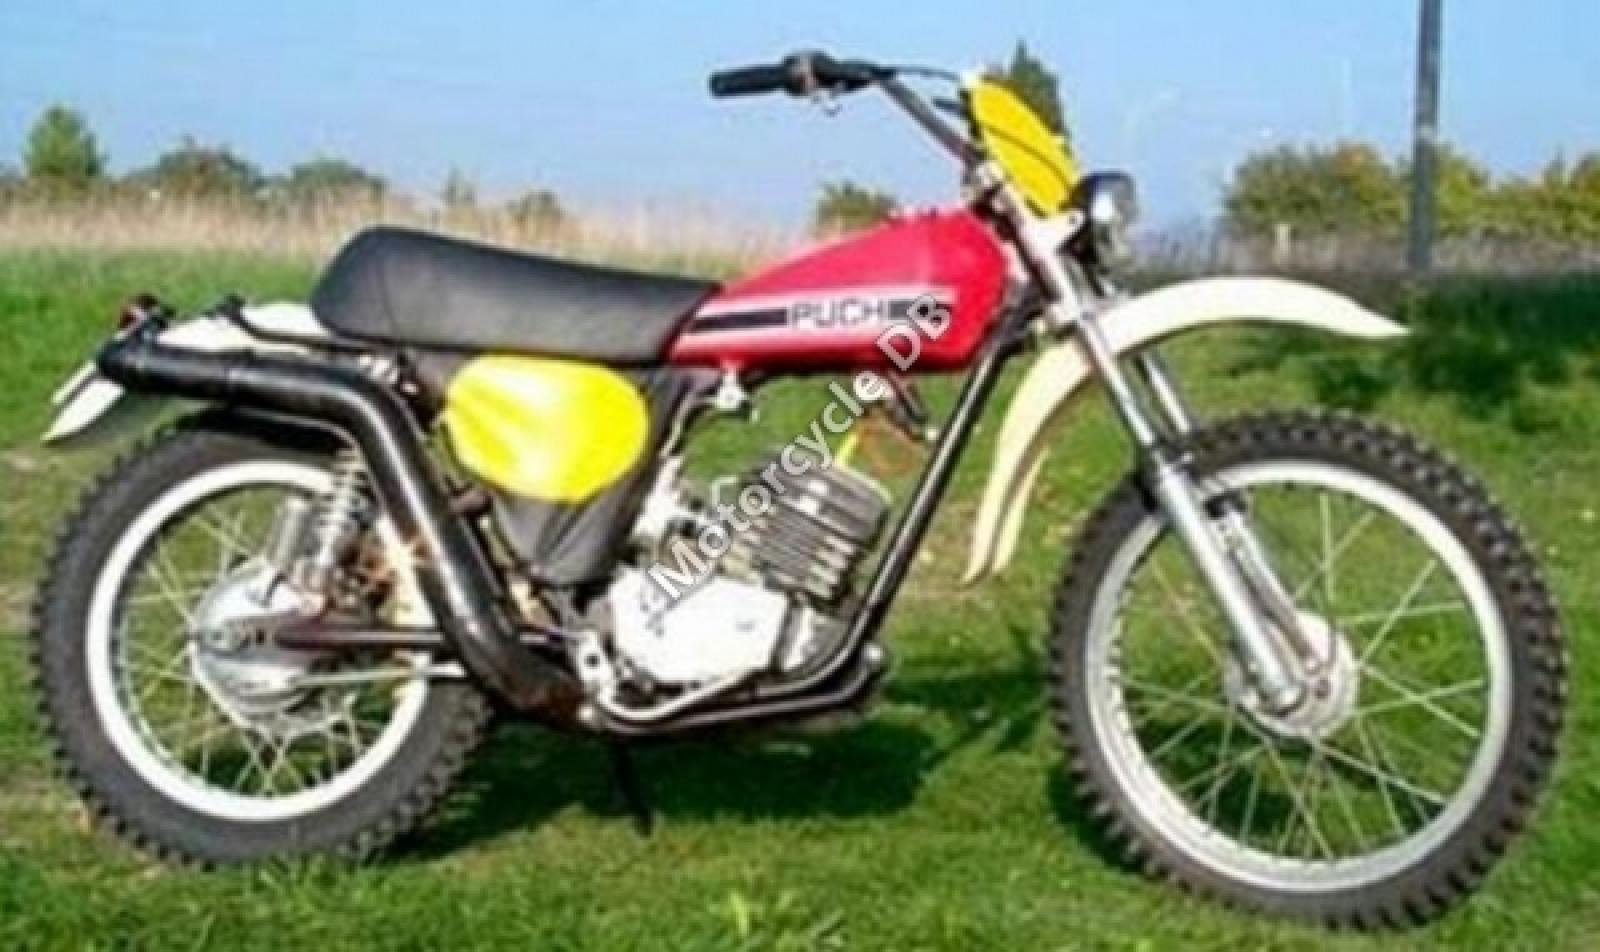 Puch GS 250 F 5 1985 images #121633